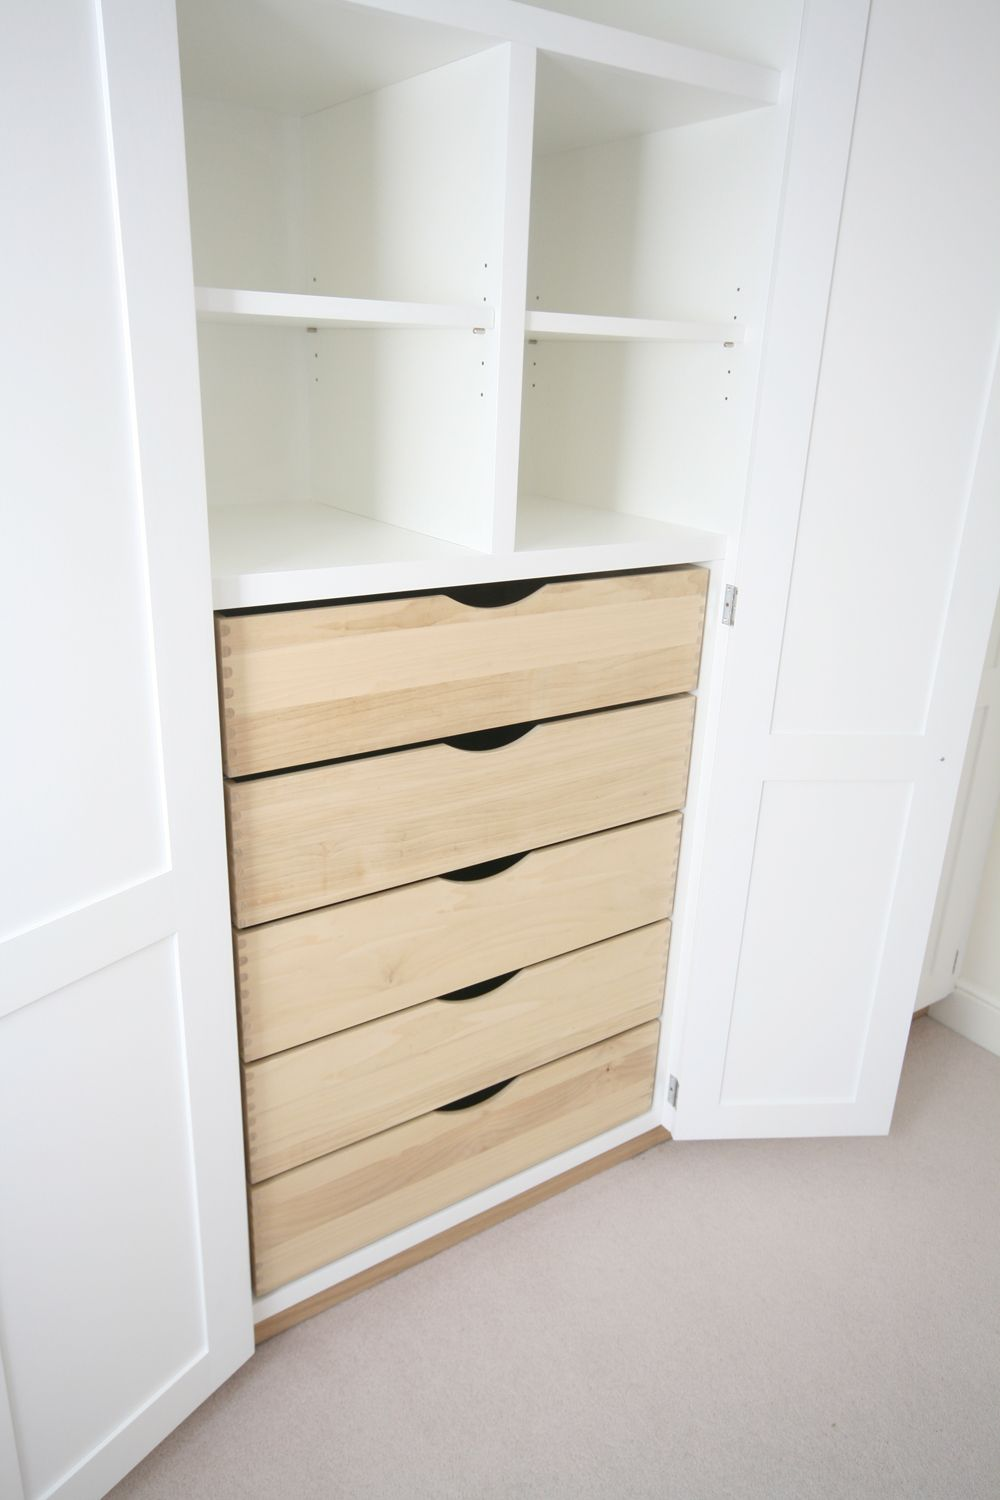 Image result for drawers in wardrobe